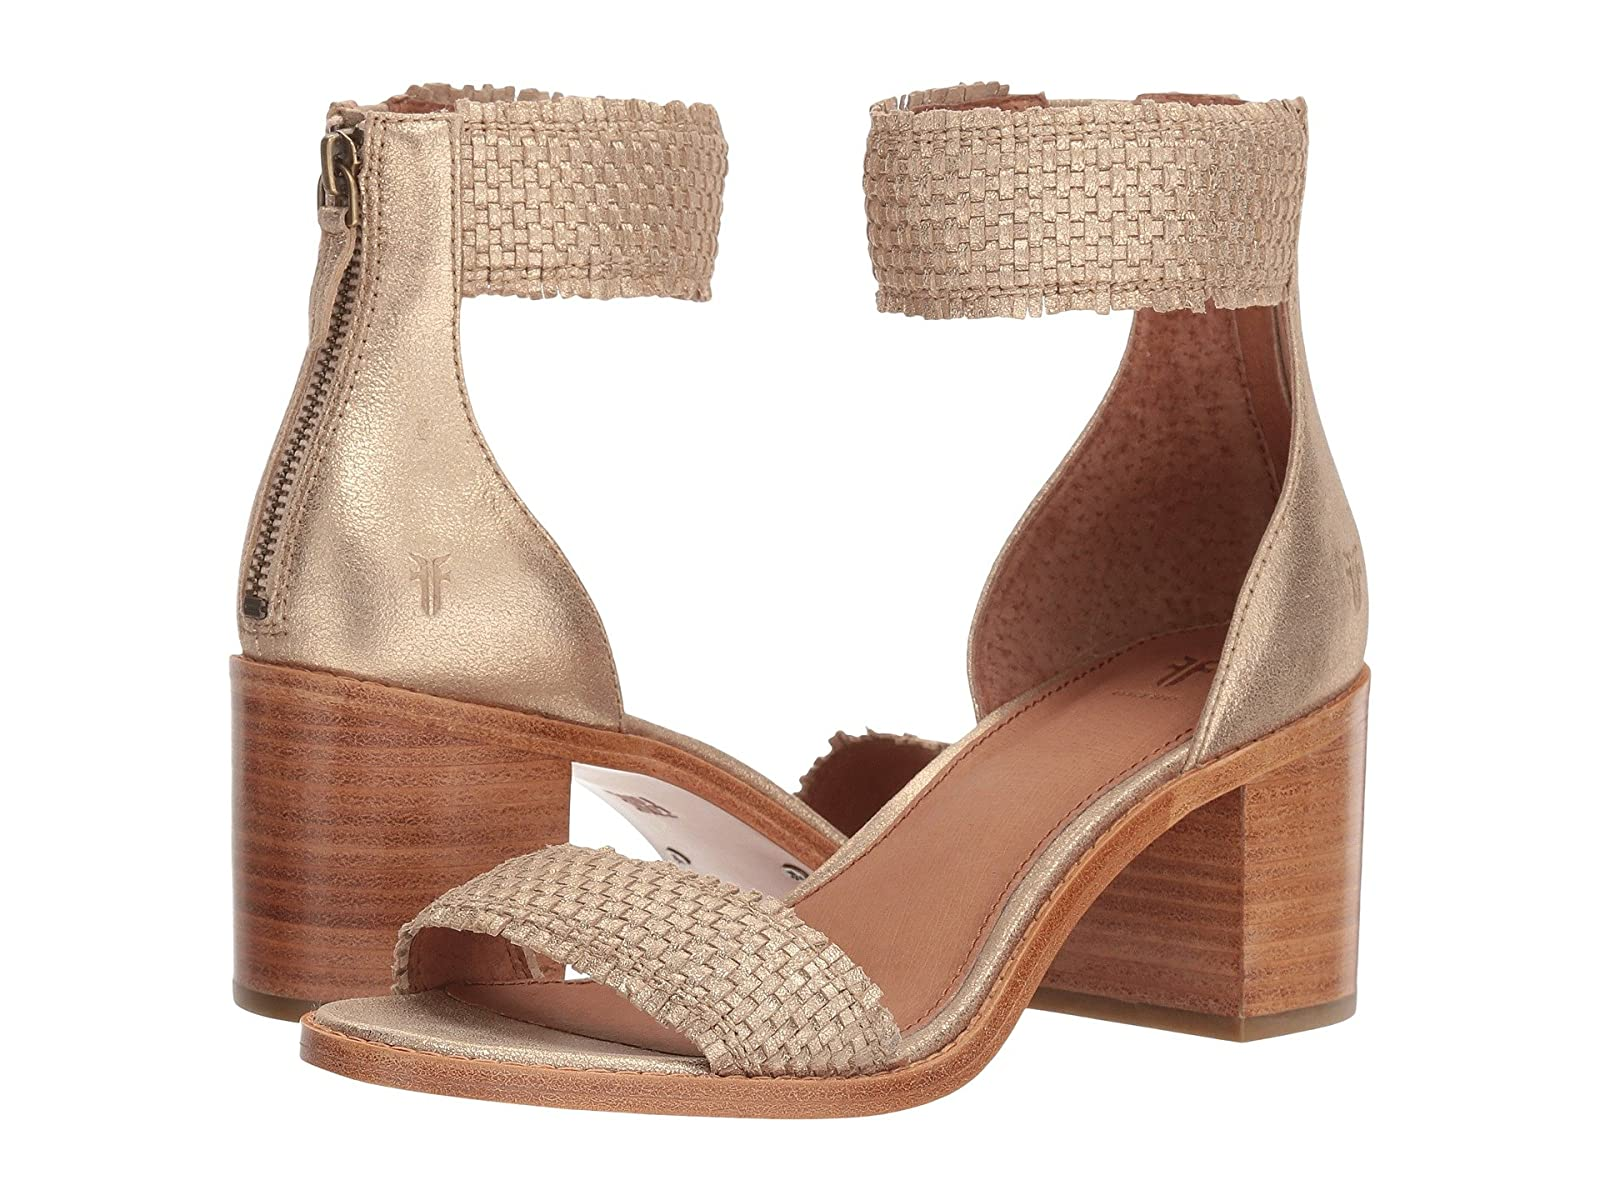 Frye Bianca Woven Back ZipAtmospheric grades have affordable shoes